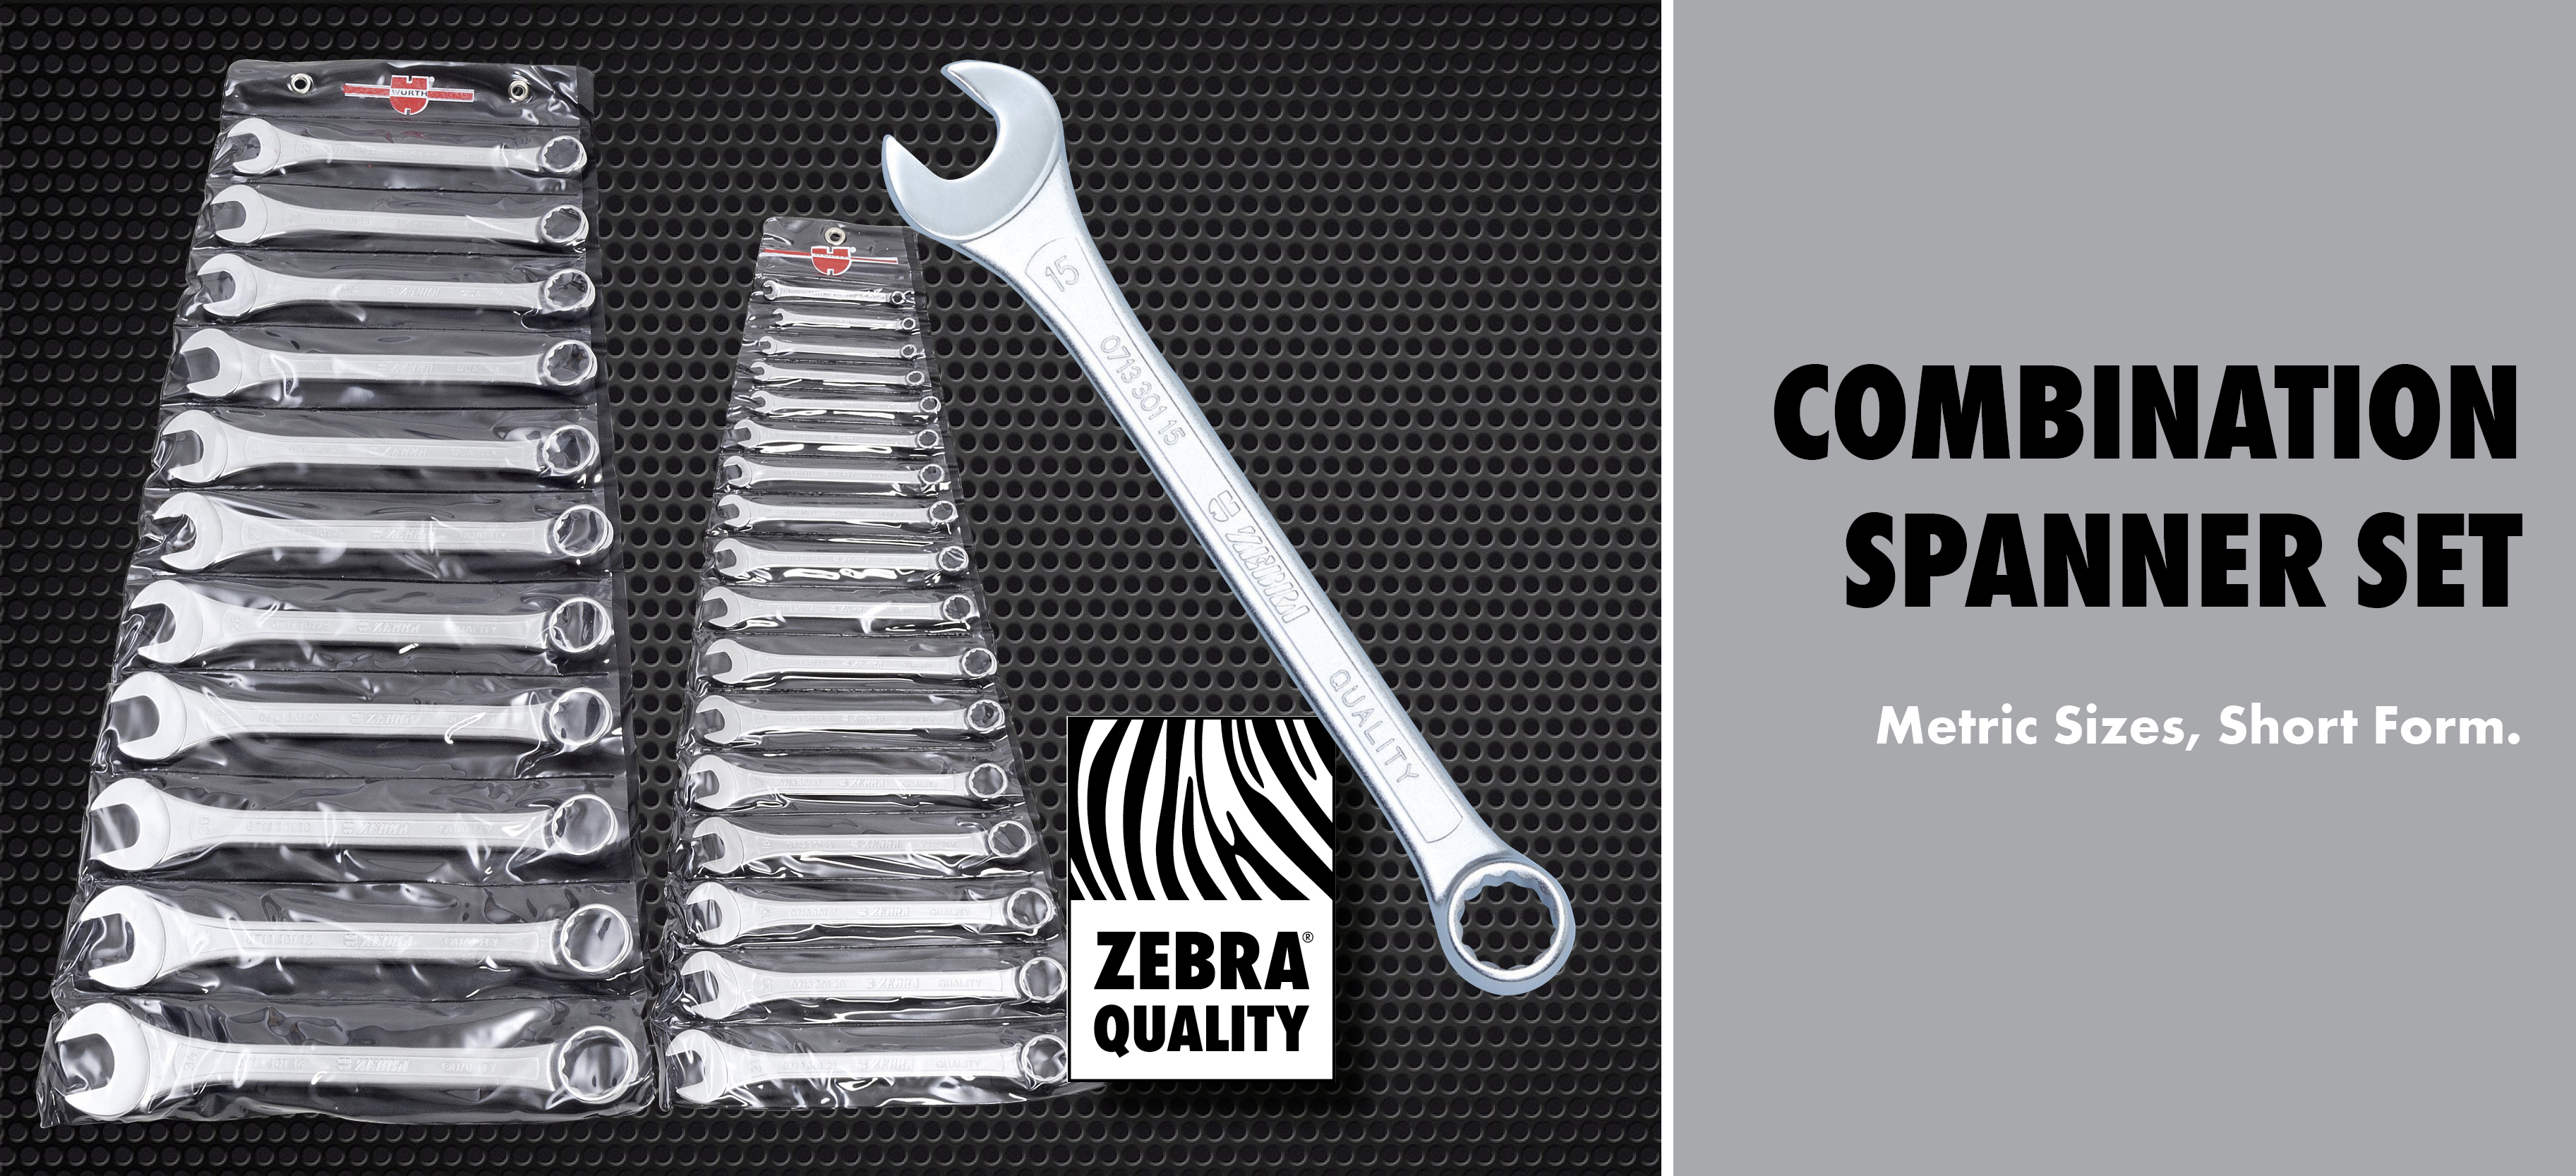 Wurth Australia Online Shop - Quality products online for